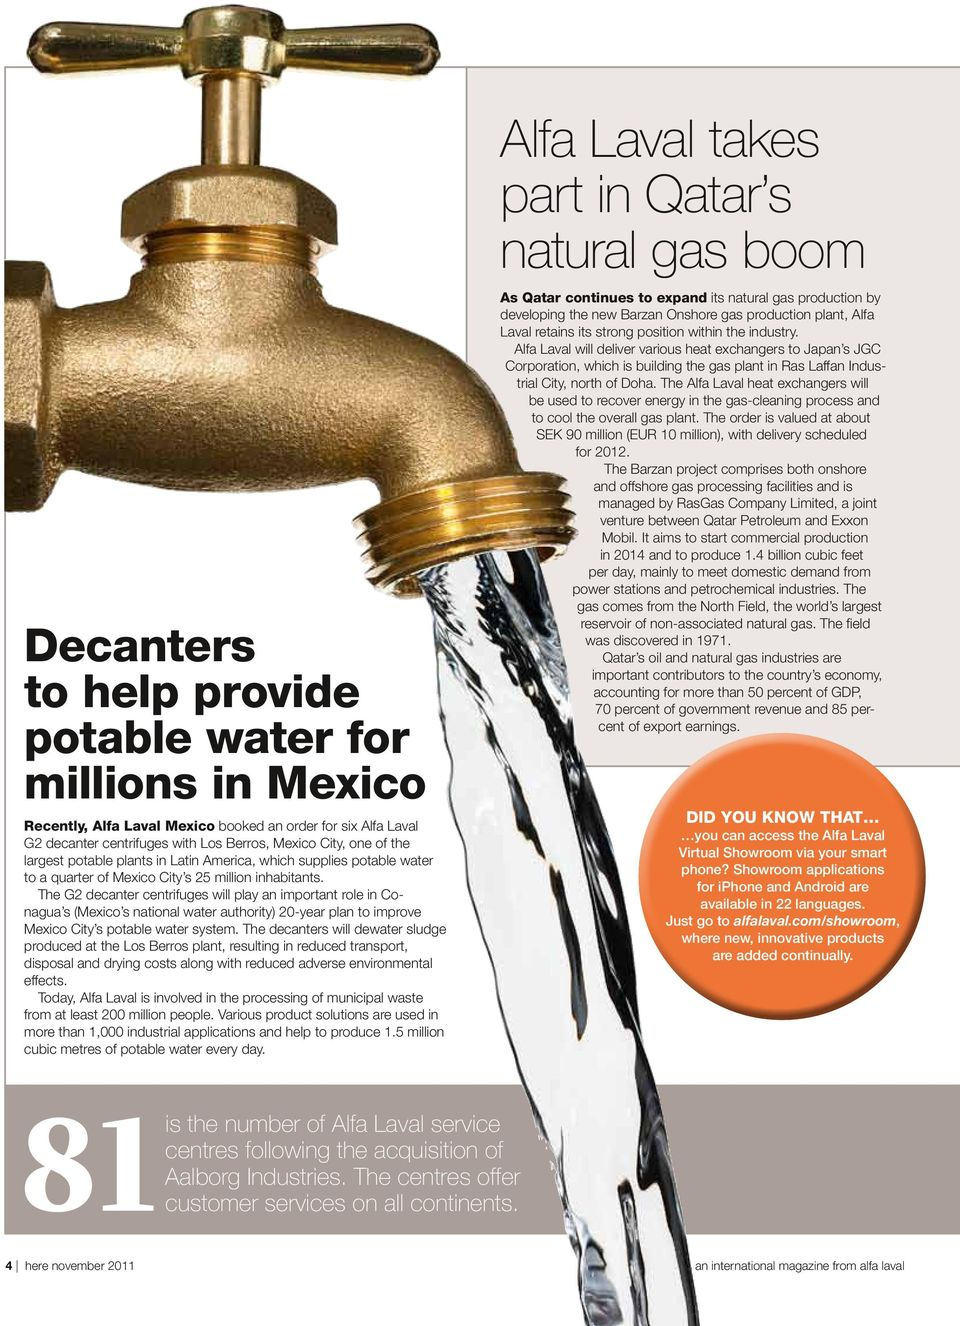 The G2 decanter centrifuges will play an important role in Conagua s (Mexico s national water authority) 20-year plan to improve Mexico City s potable water system.